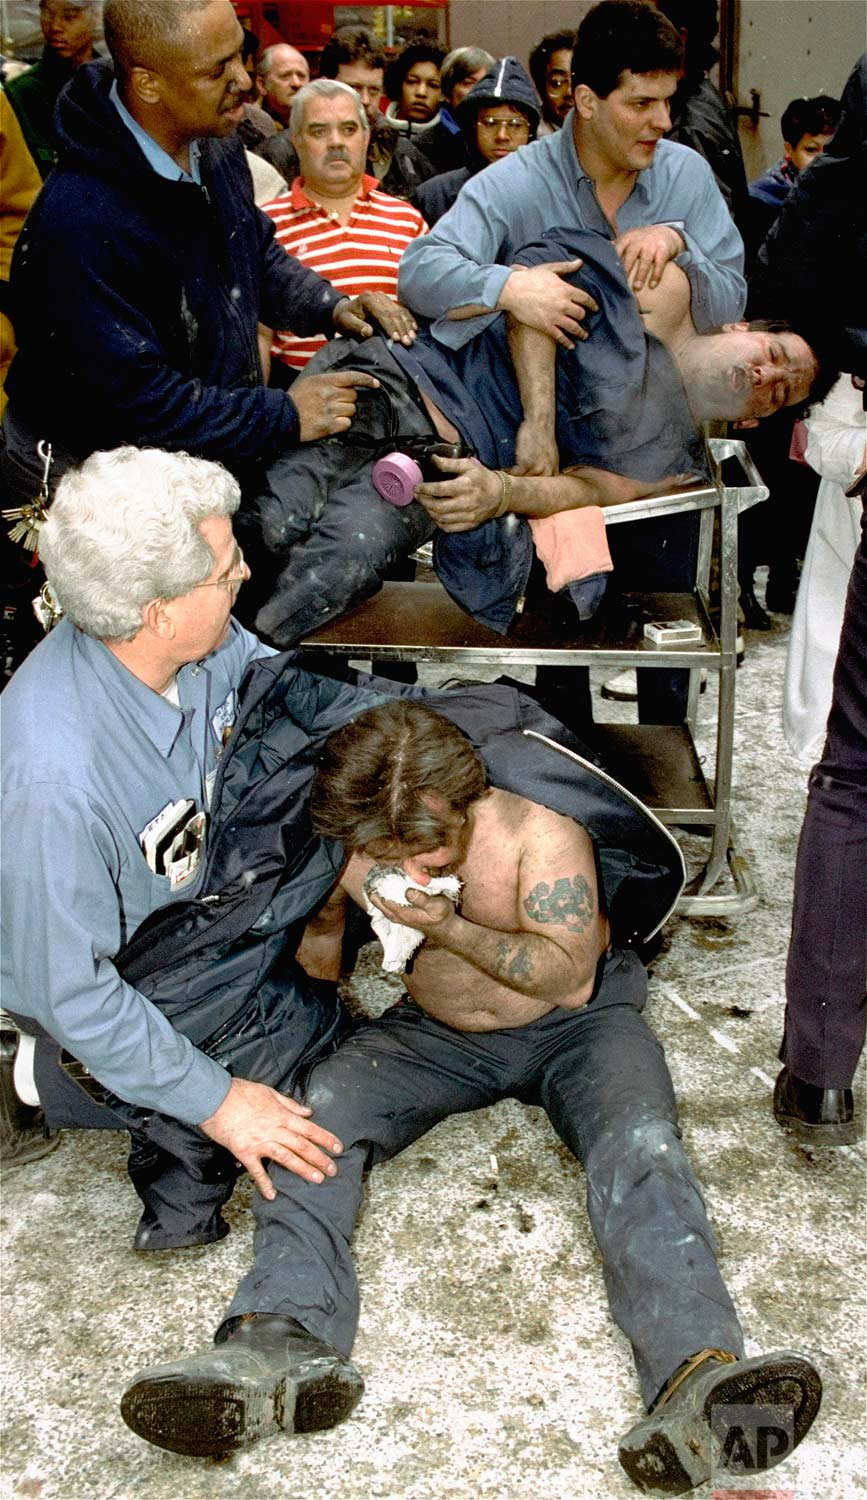 In this Feb. 26, 1993 photo, victims of a truck bombing at the World Trade Center in New York are treated at the scene. (AP Photo/Marty Lederhandler)